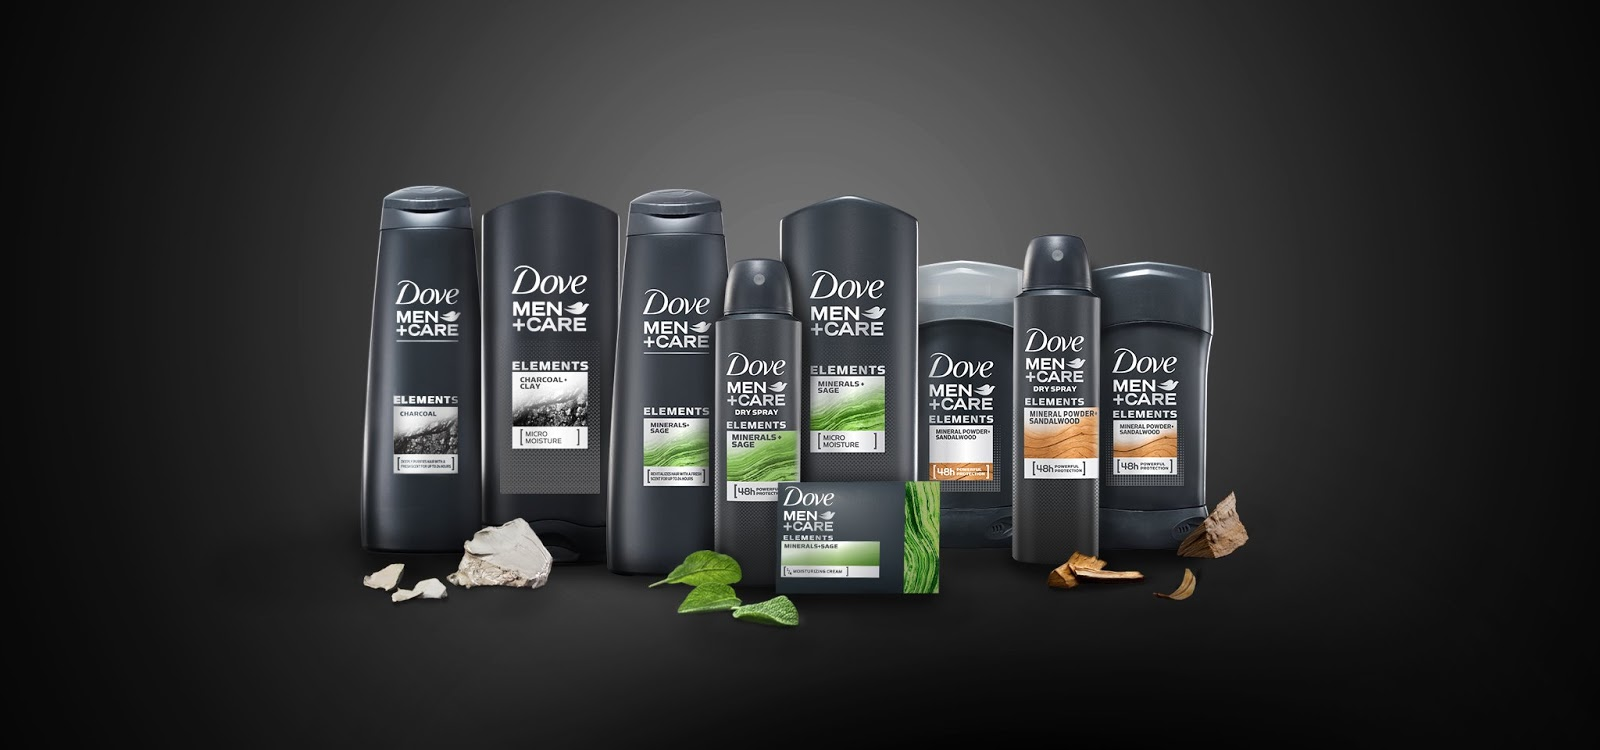 Review Dove Men Care Products For Face And Body Dovemen Musk Alyssa Ashley Original Made In Italy 750 Ml E I Received Some From My Husband To Try Out He Enjoyed Them Tremendously Usually Eschews Facial